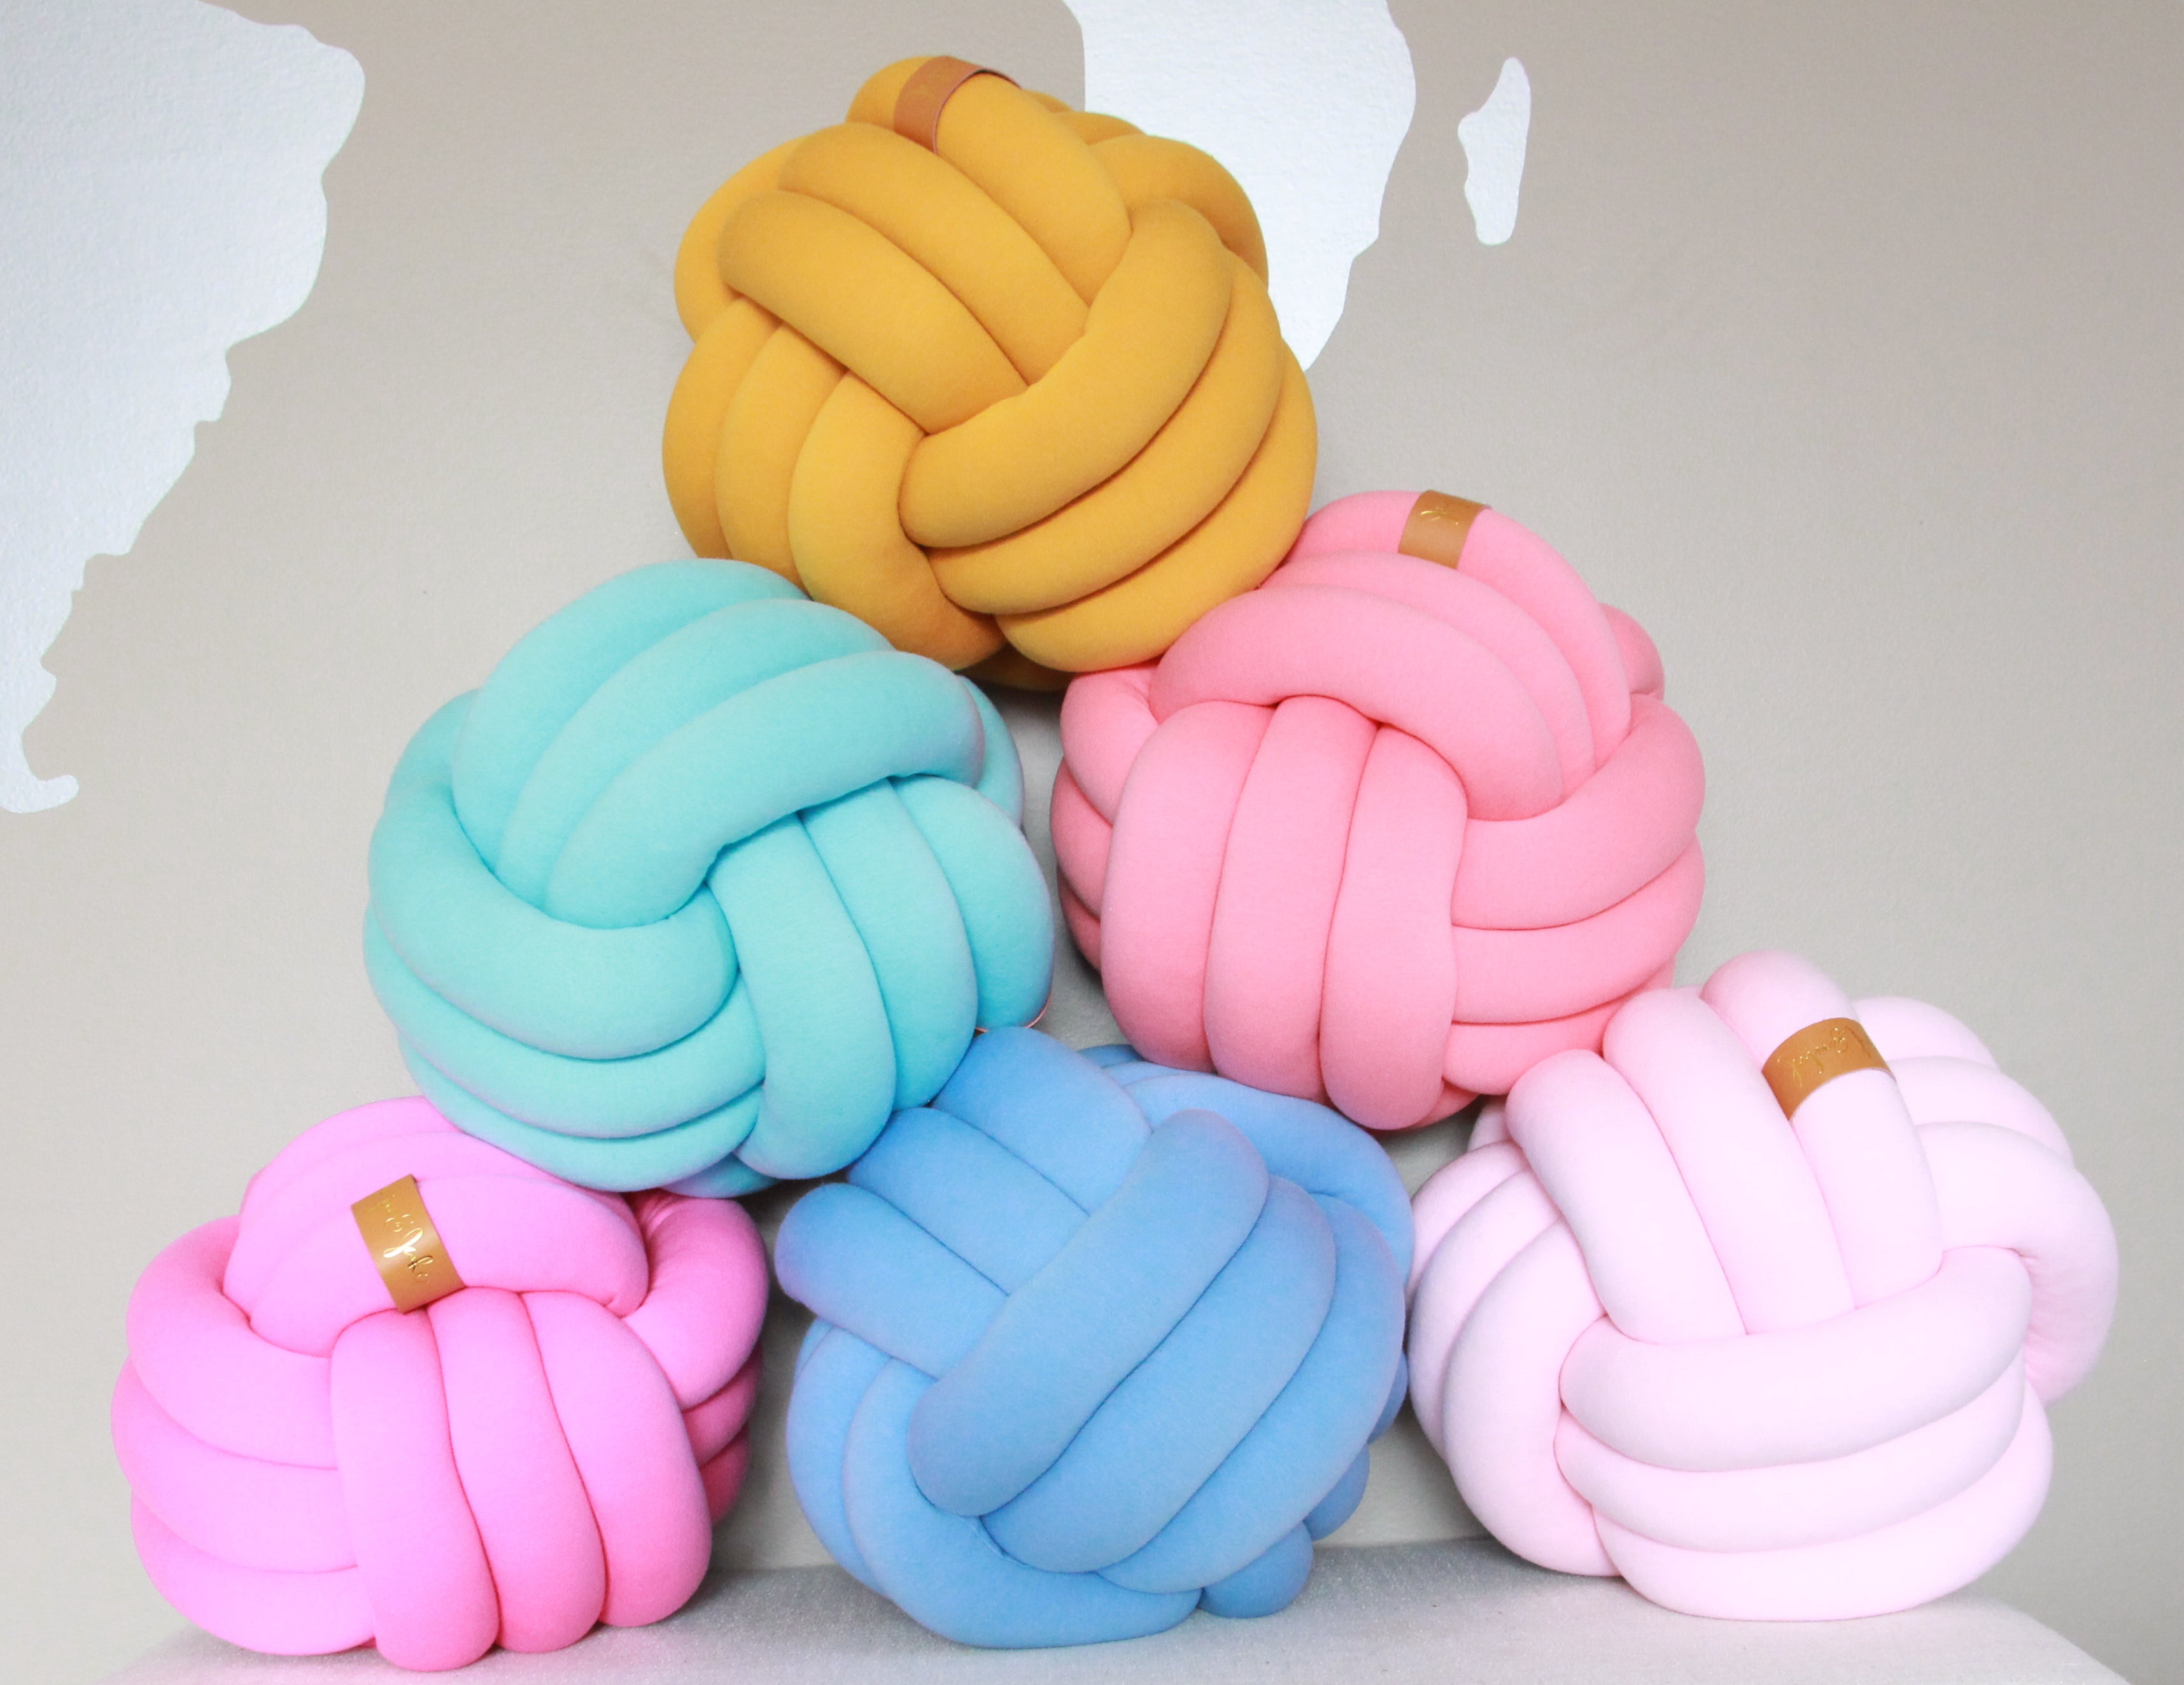 Grande Sphere Knot Pillow